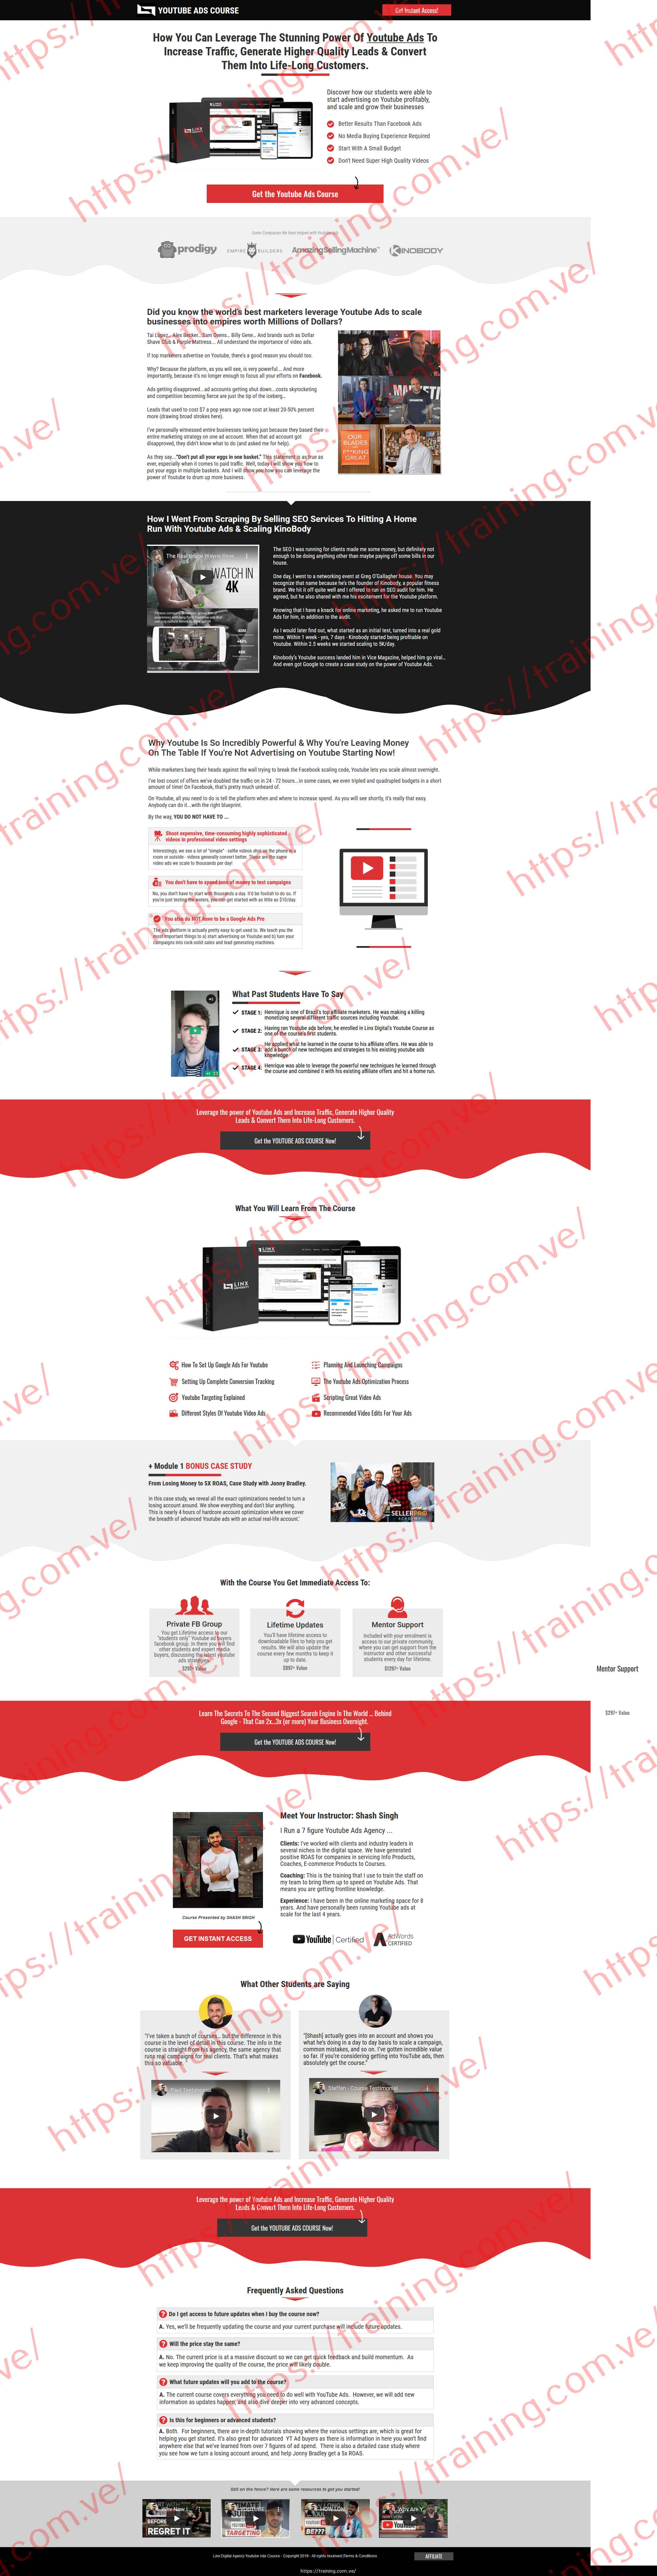 Linx YouTube Ads Course by Shash Singh Sales page